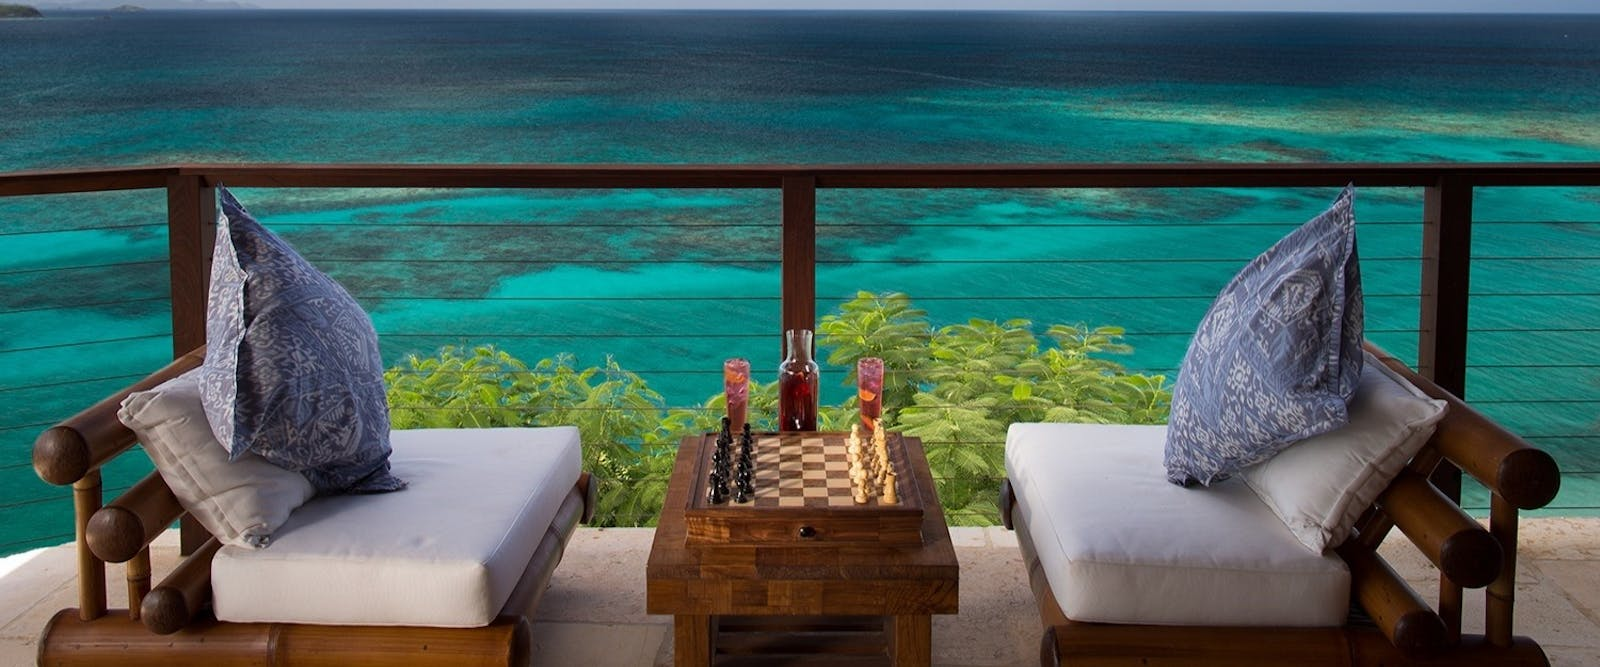 Chess for two at Necker Island, British Virgin Islands